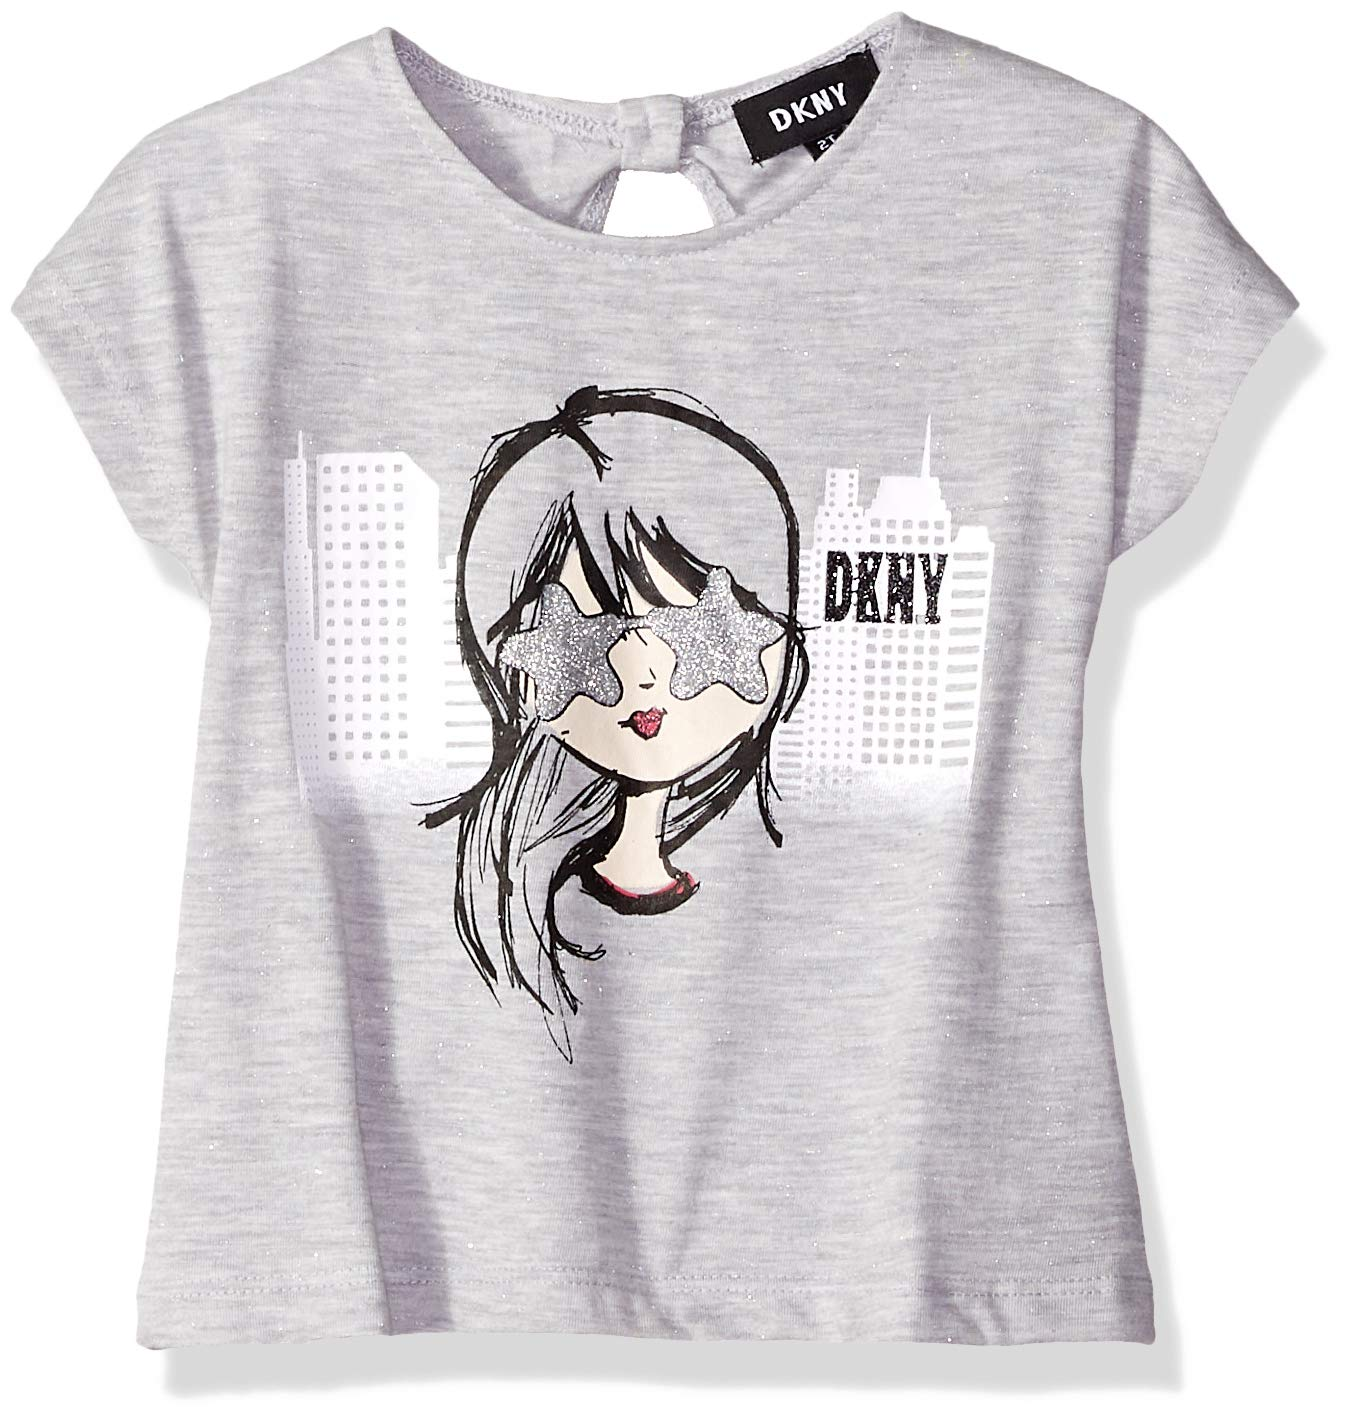 DKNY Girls' Little Love Your Selfie Top, Medium Heather Gray, 6